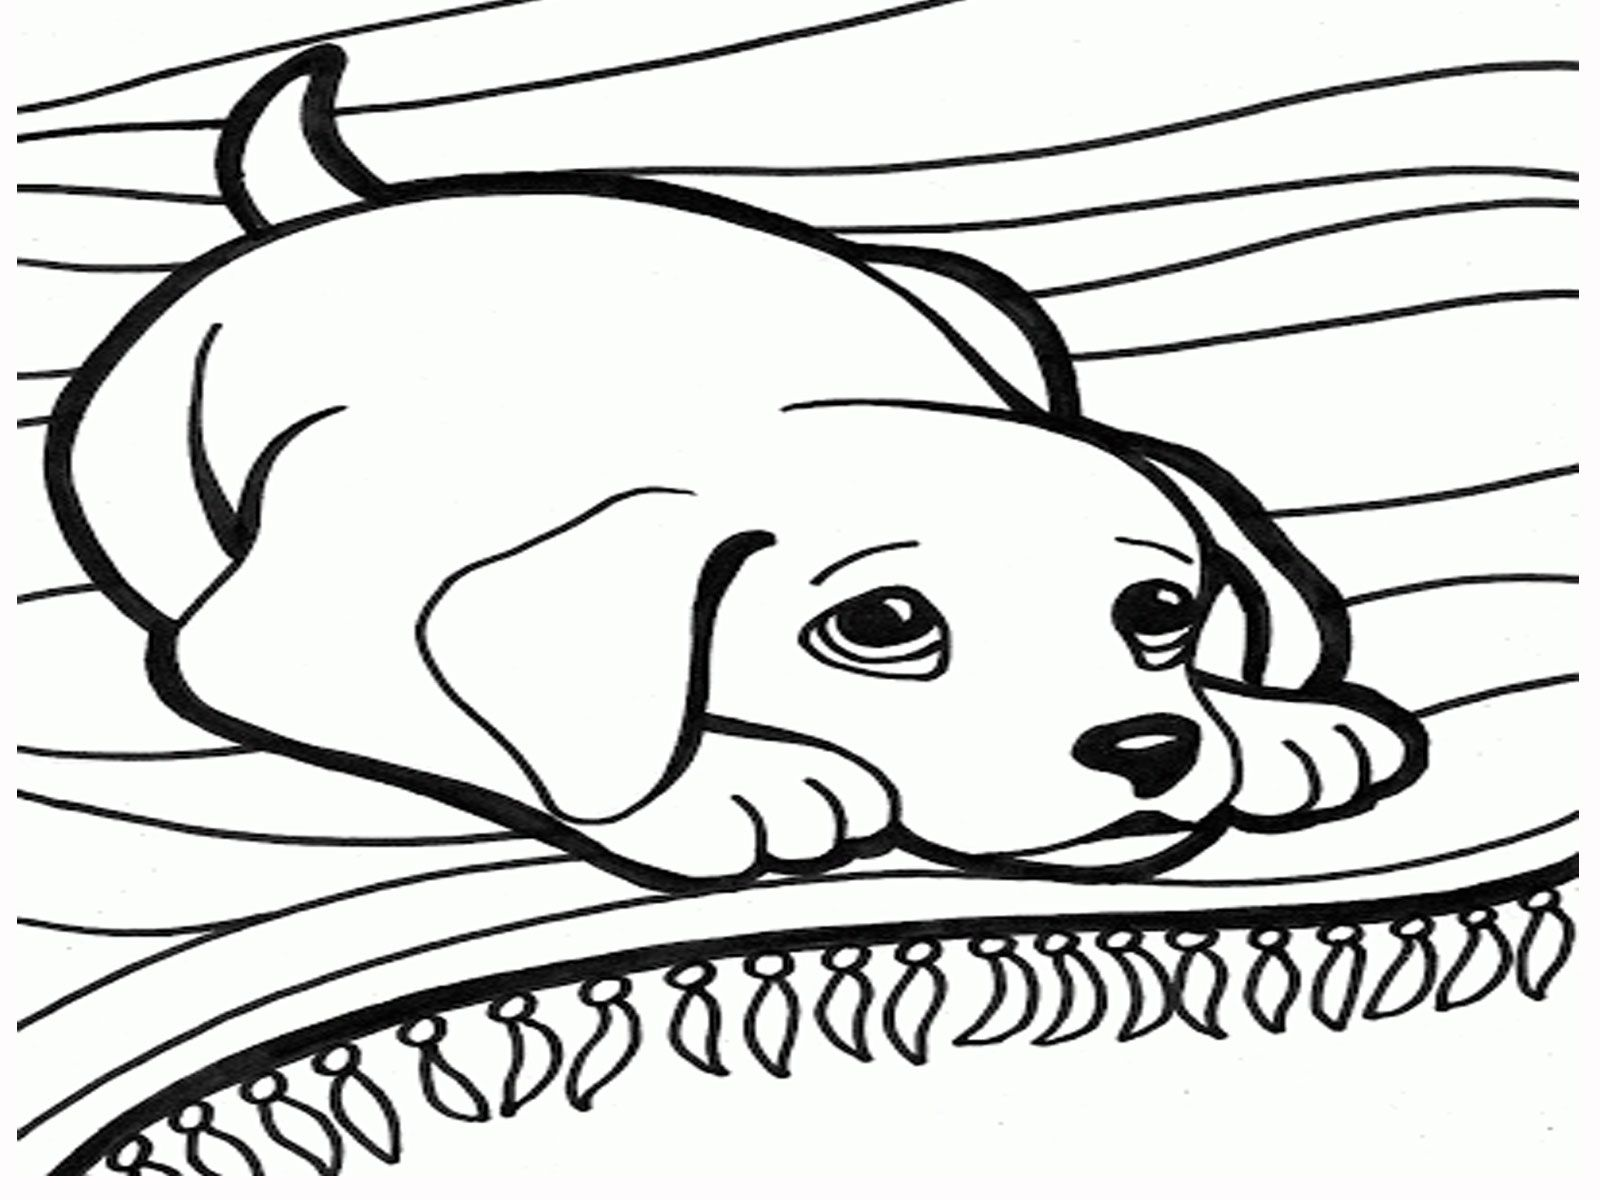 Grab Your Fresh Coloring Pages Dogs And Cats Download Https Gethighit Com Fresh Coloring Pages Dog Horse Coloring Pages Dog Coloring Book Dog Coloring Page